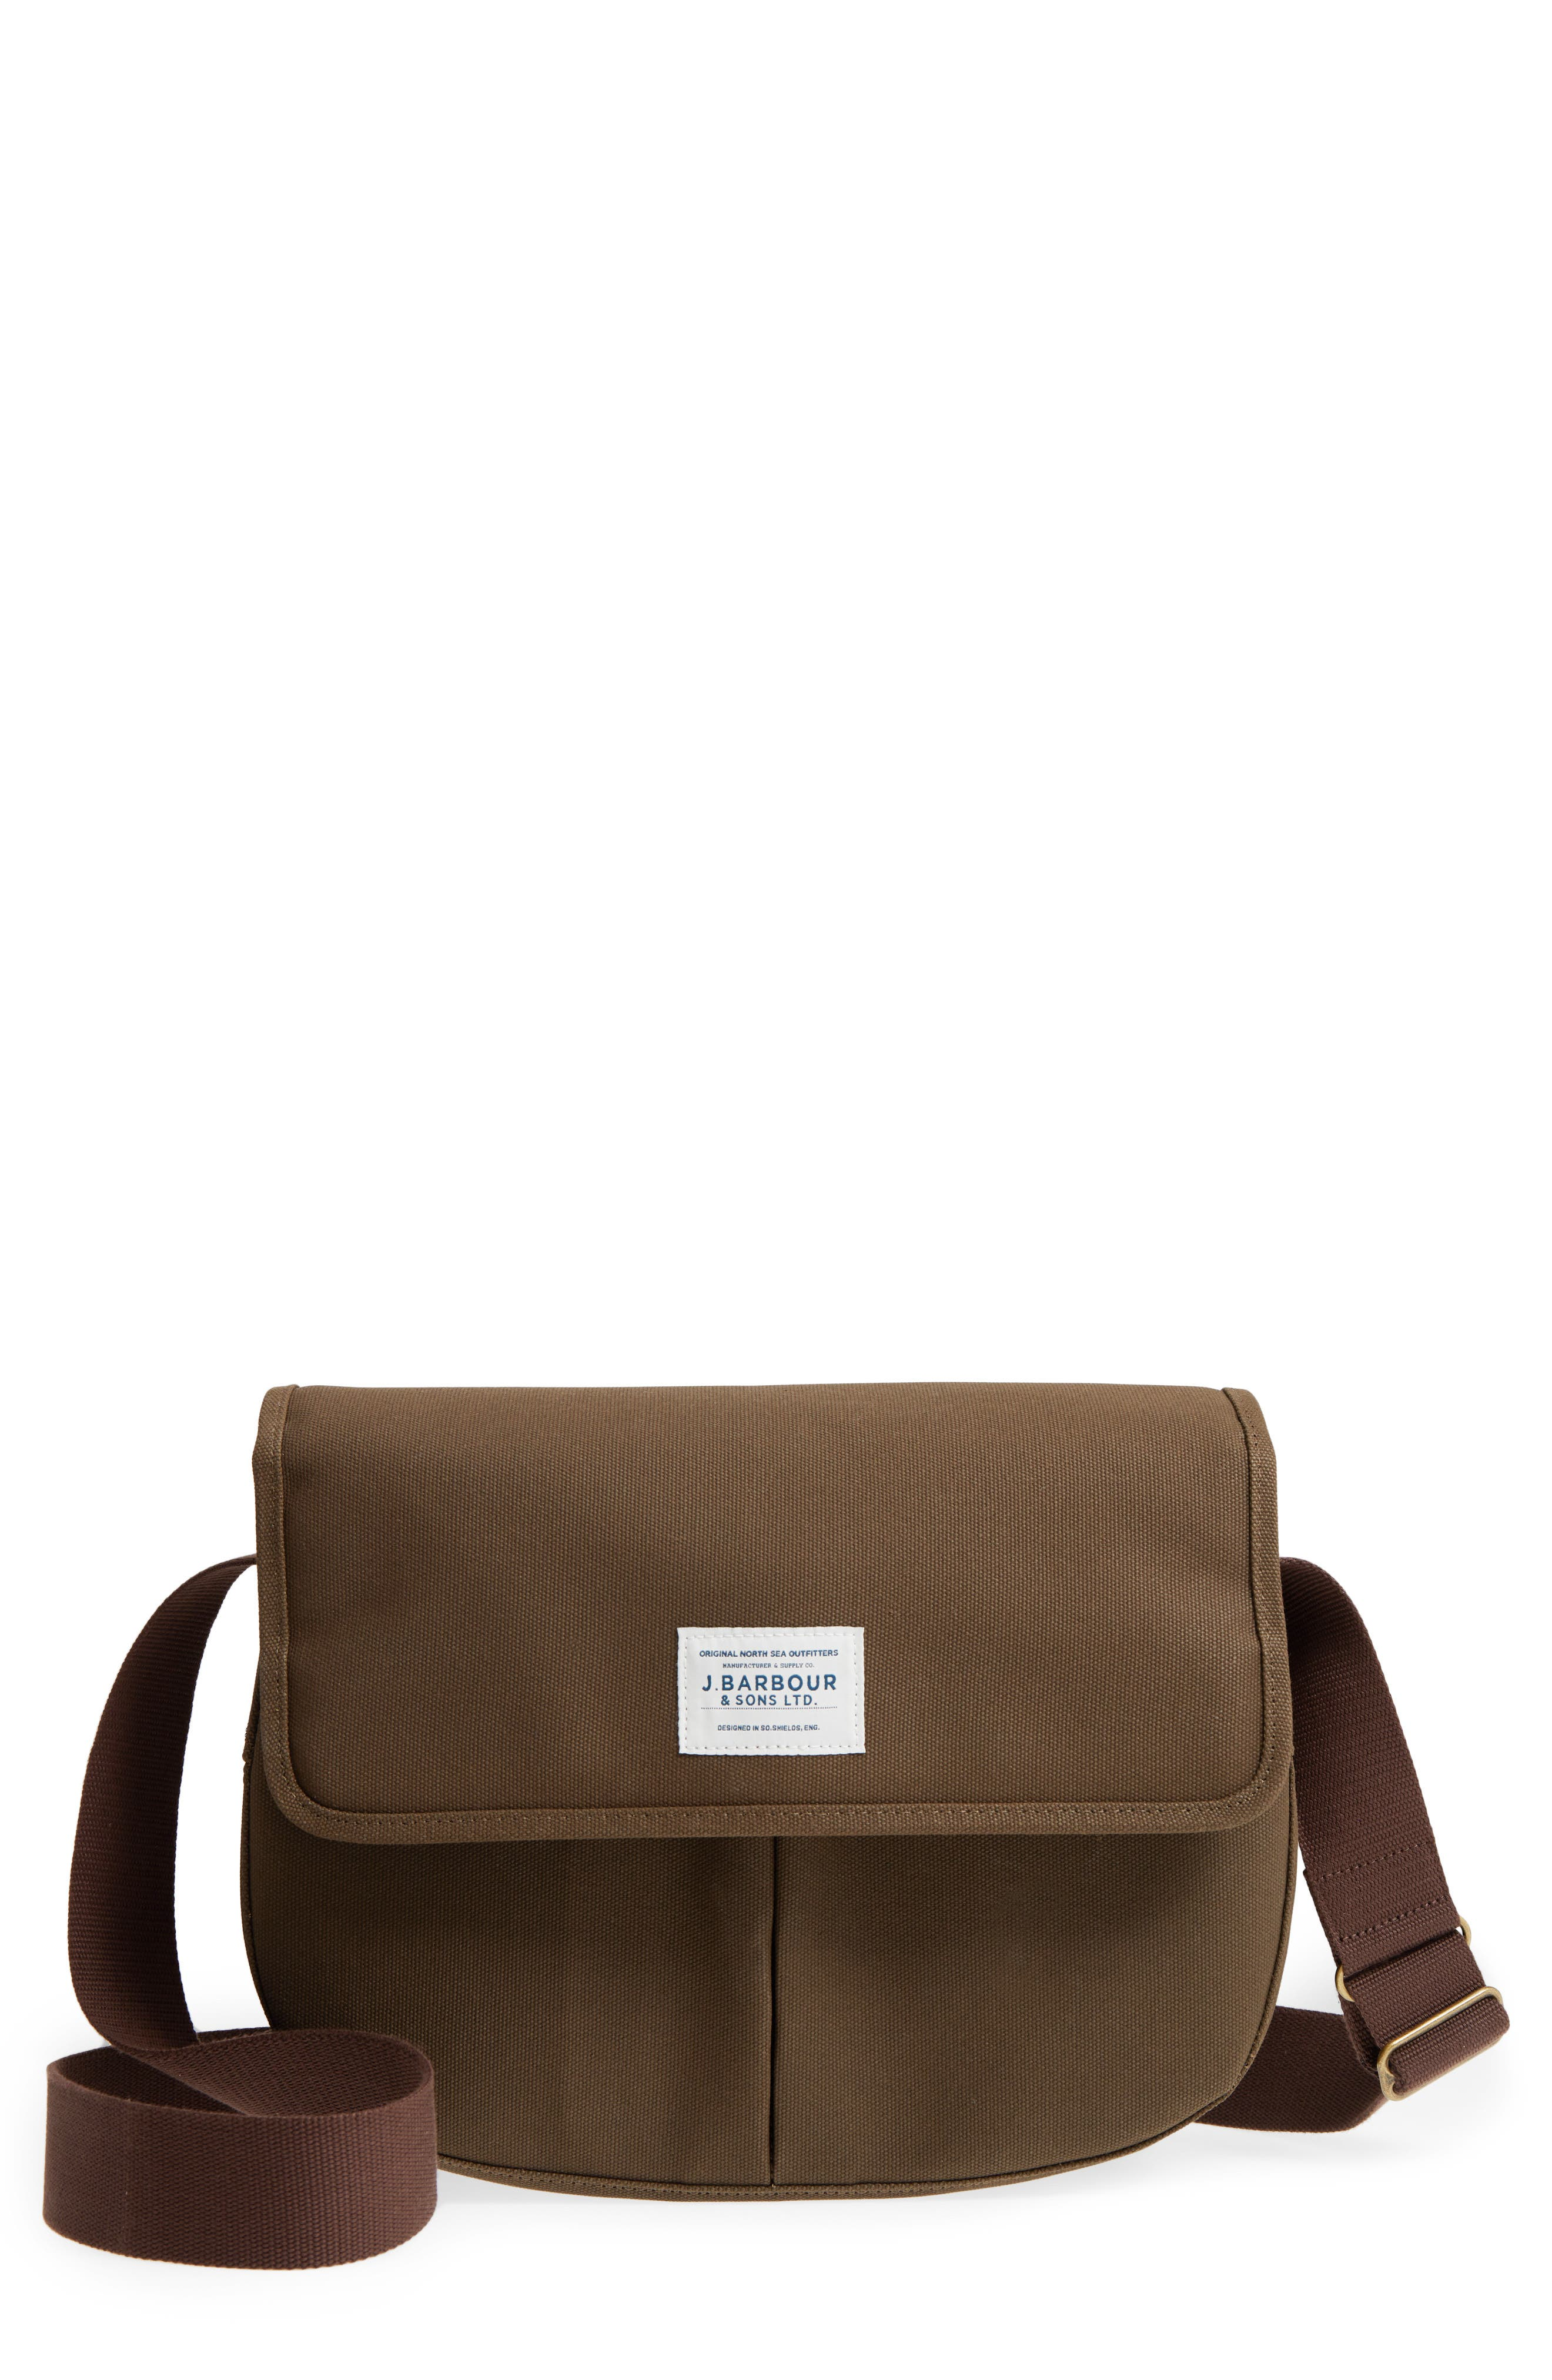 Tarras Canvas Messenger Bag,                             Main thumbnail 1, color,                             OLIVE